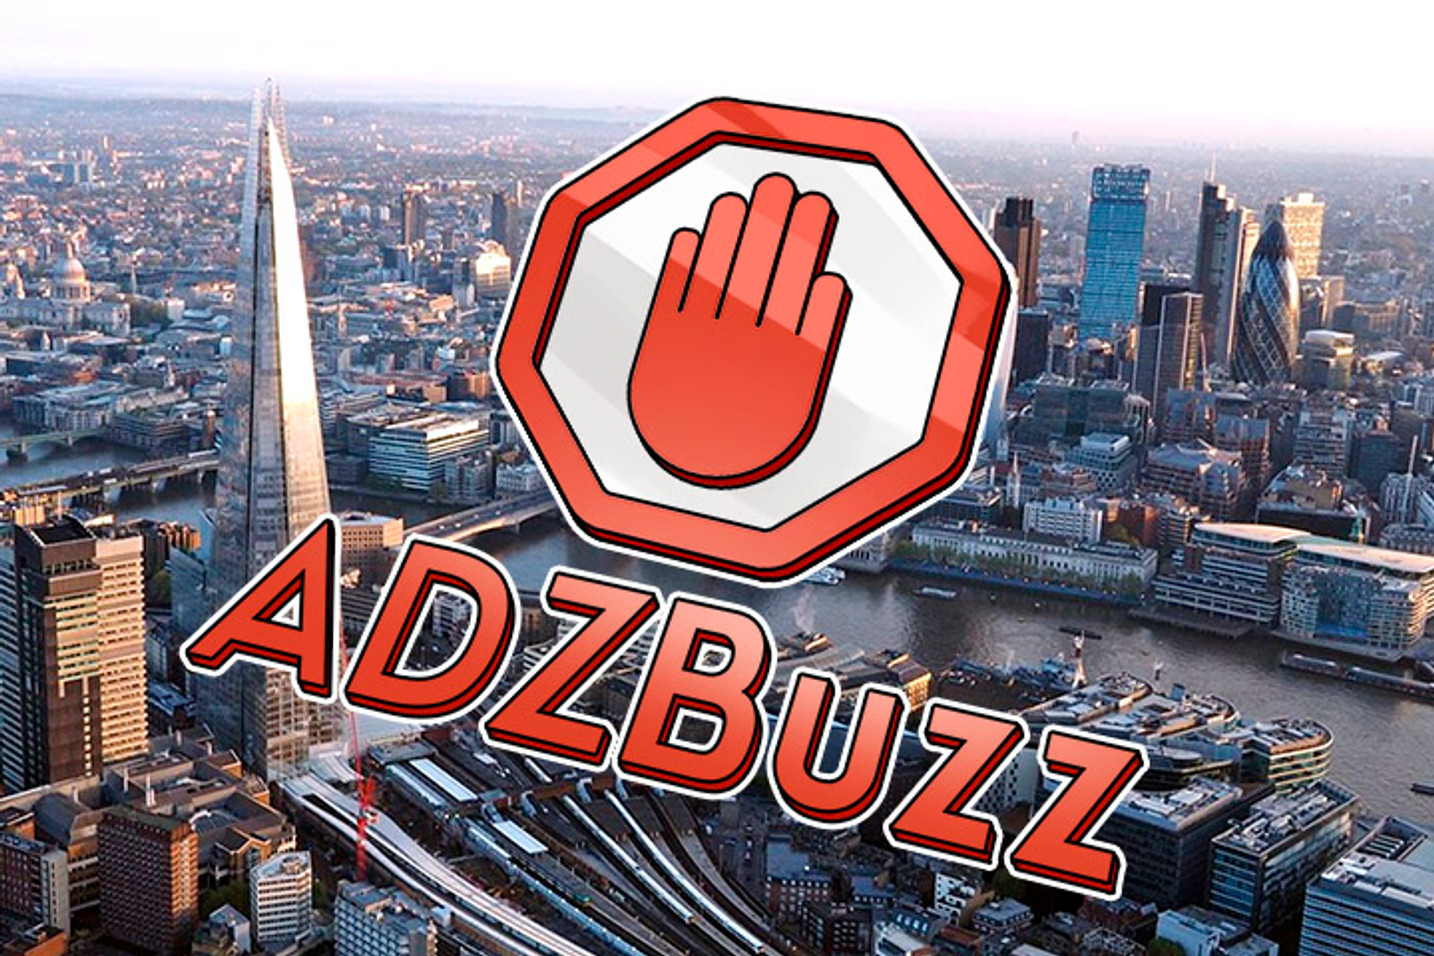 ADZBuzz, Creator of ADZcoin Cryptocurrency Introduces uBlock Ad Blocker for Internet Users